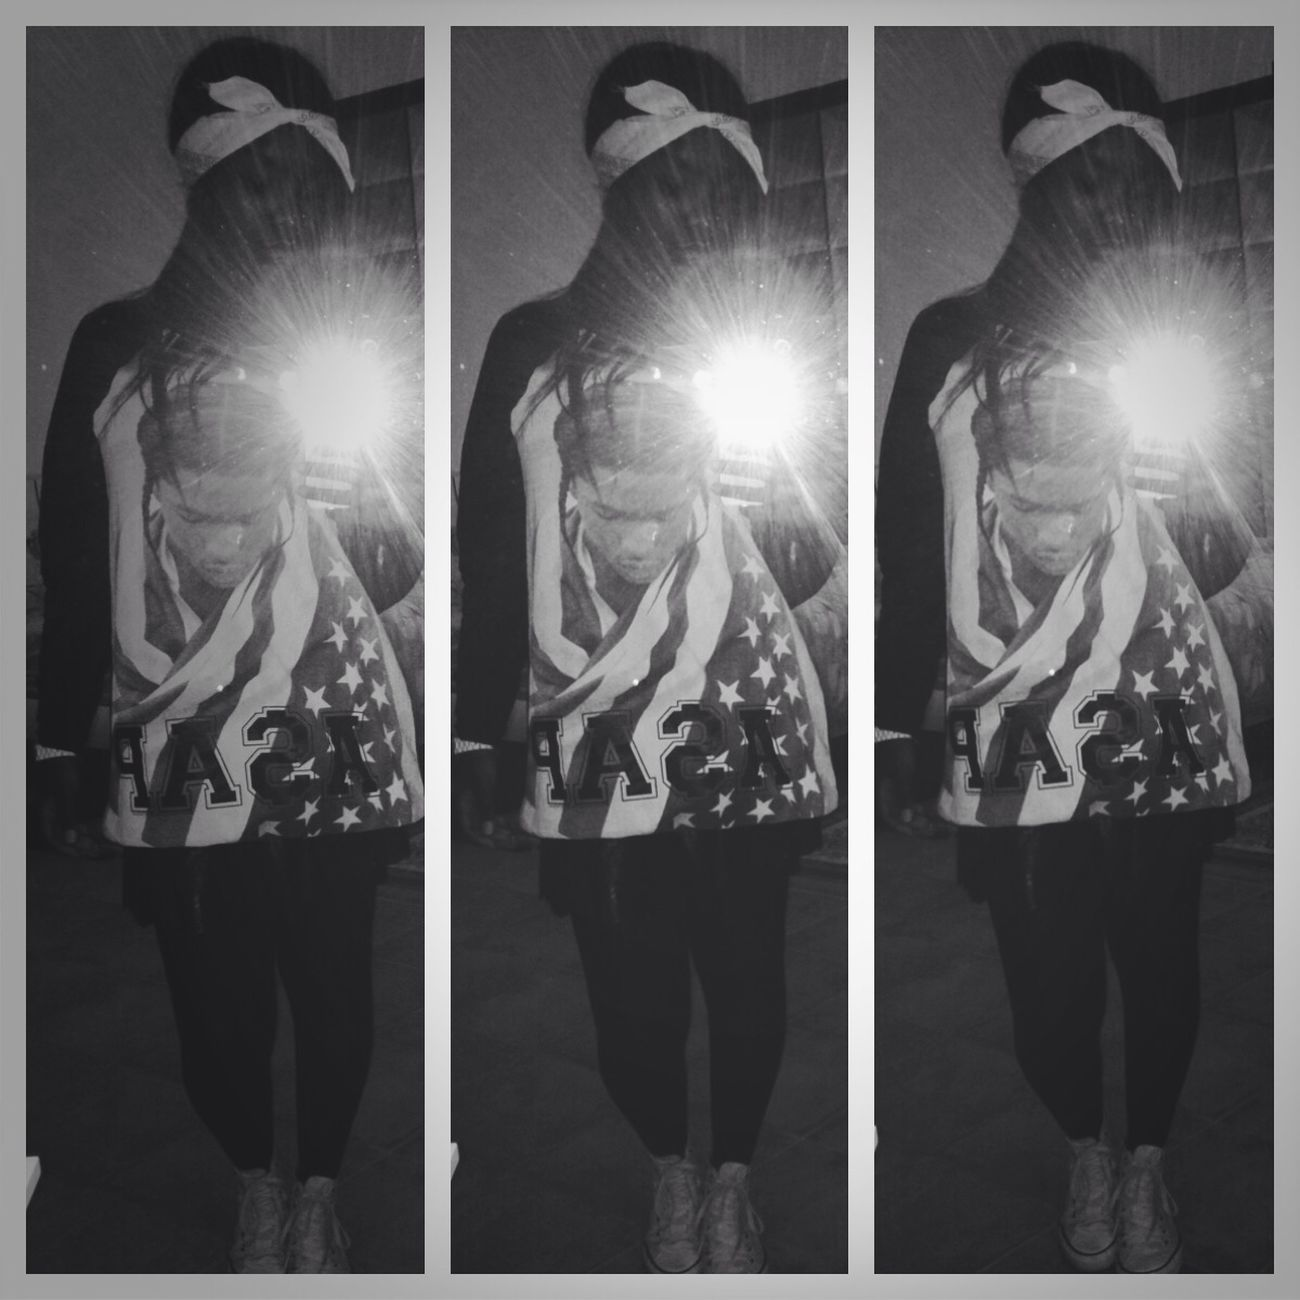 Ootd A$apRocky Fan Black & White :) Fashionkilla